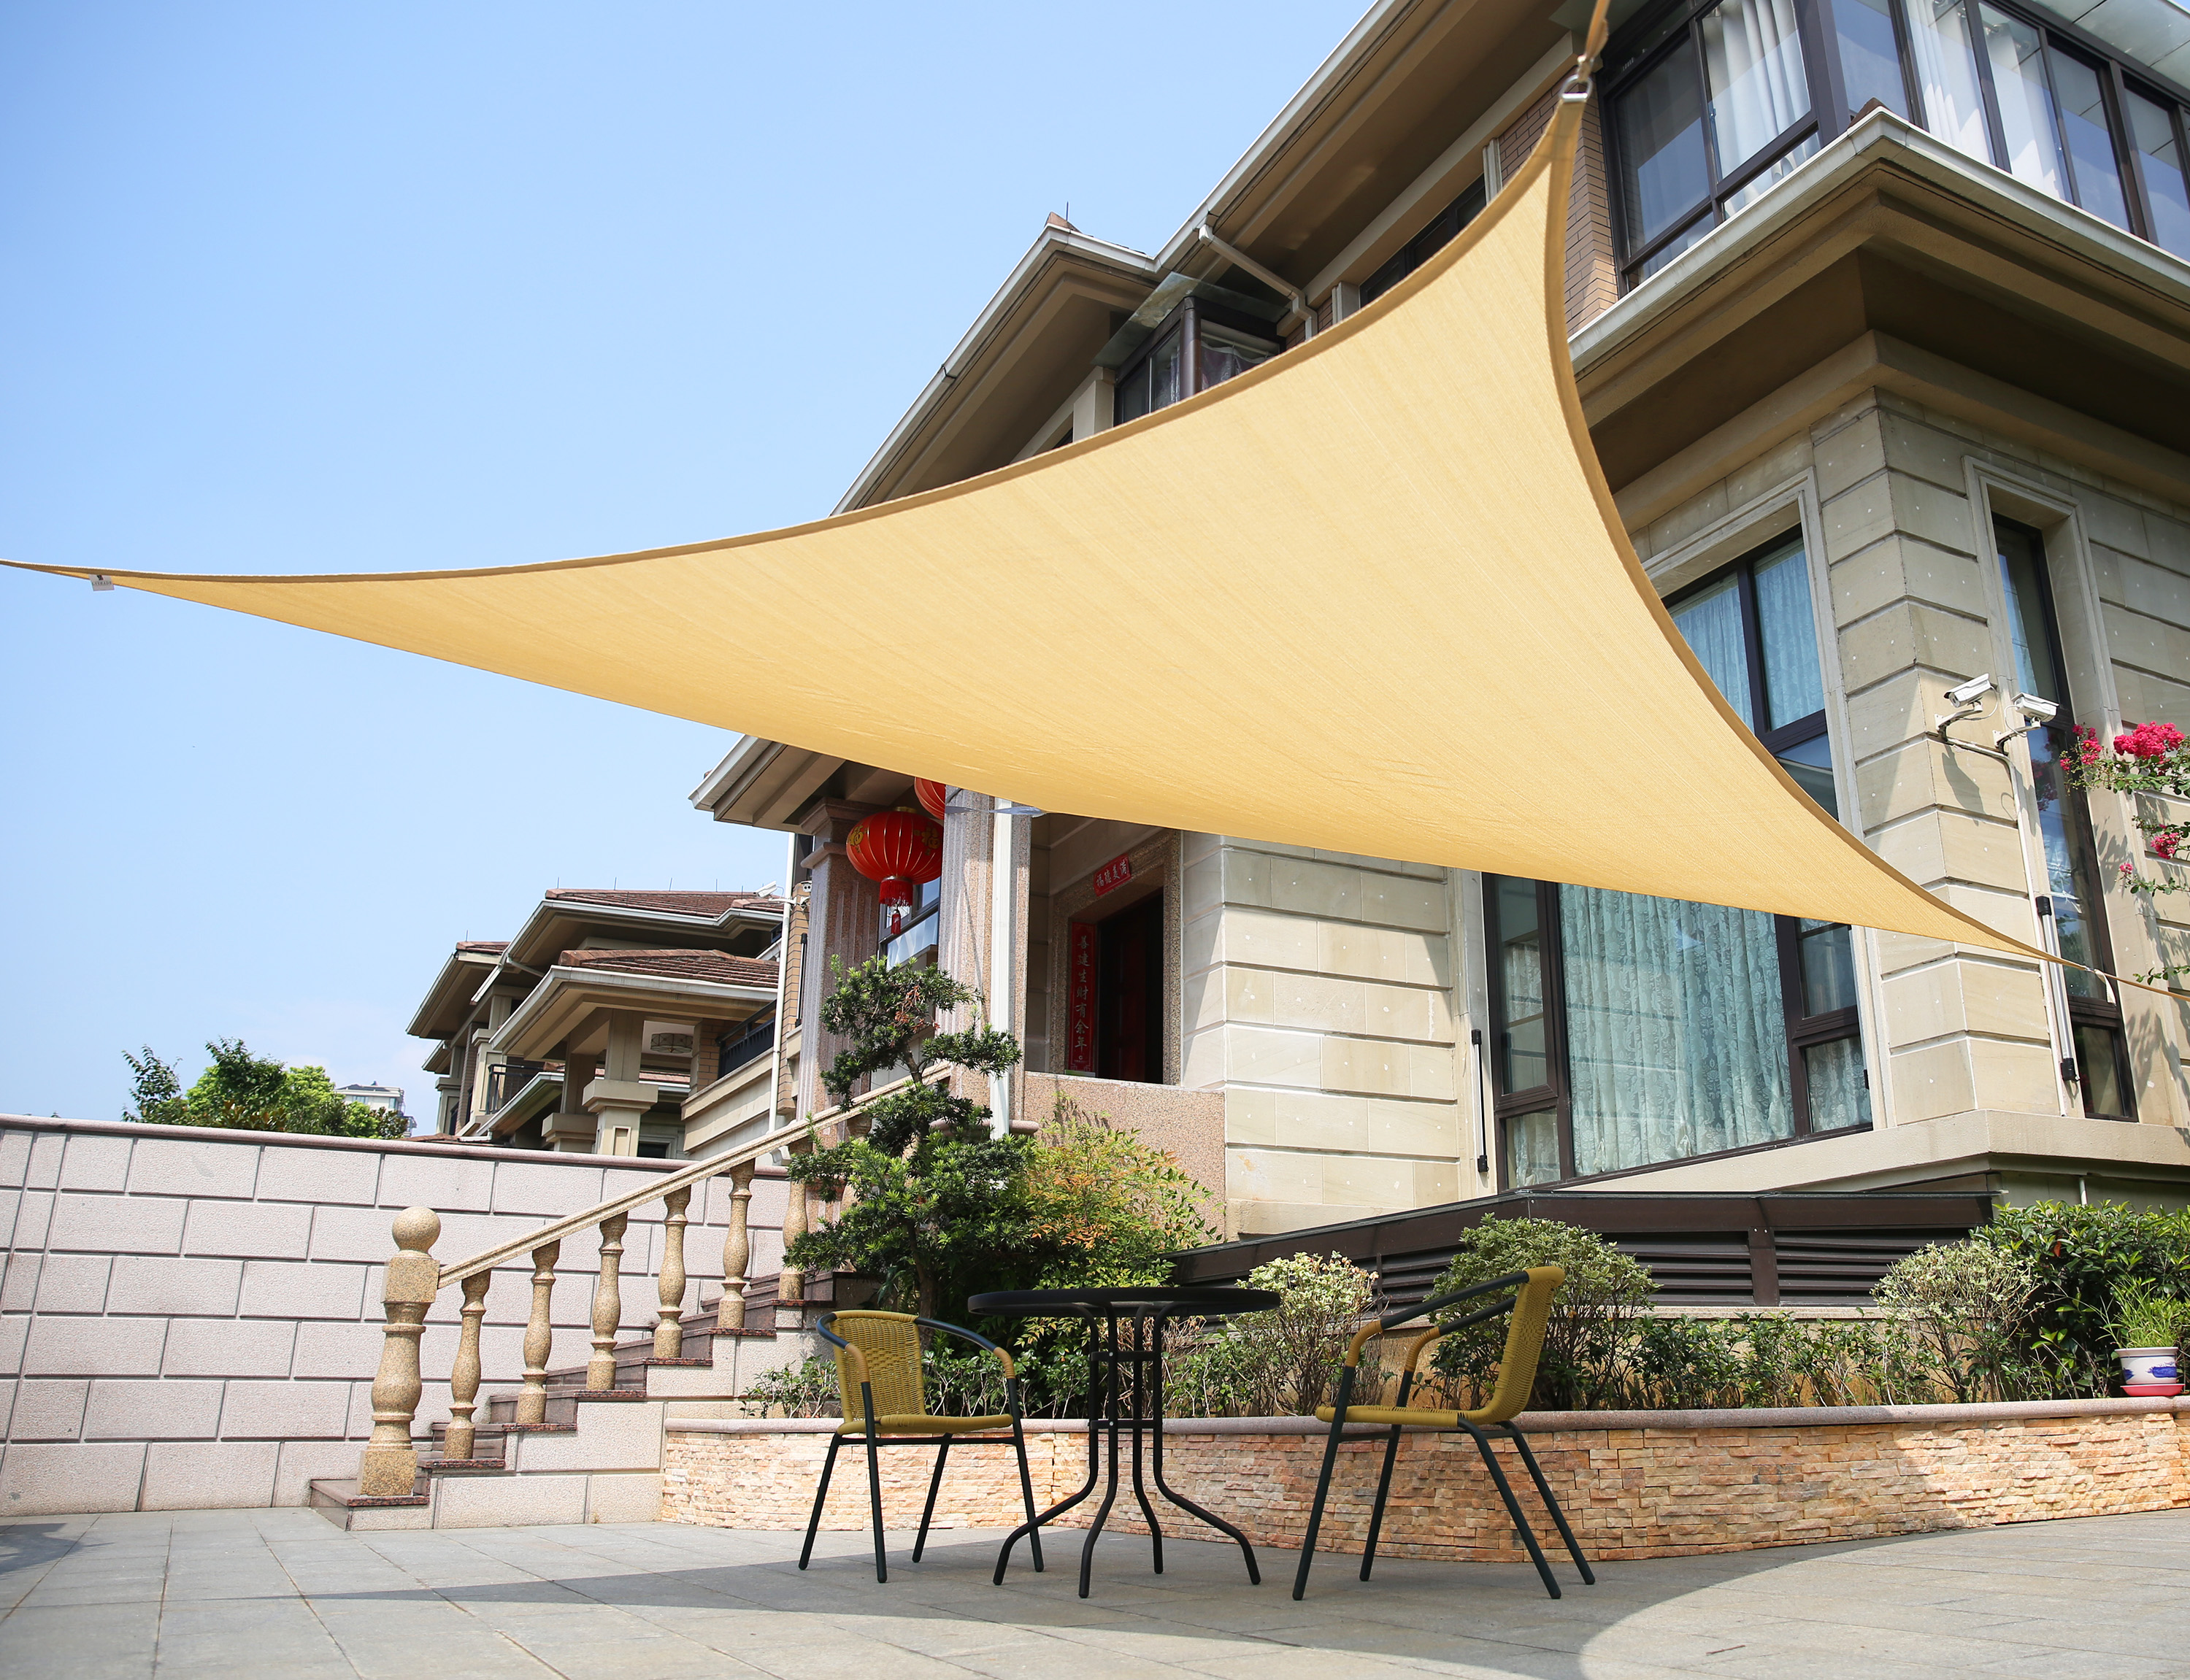 lyshade 12 39 square sun shade sail canopy uv block patio lawn outdoor ebay. Black Bedroom Furniture Sets. Home Design Ideas